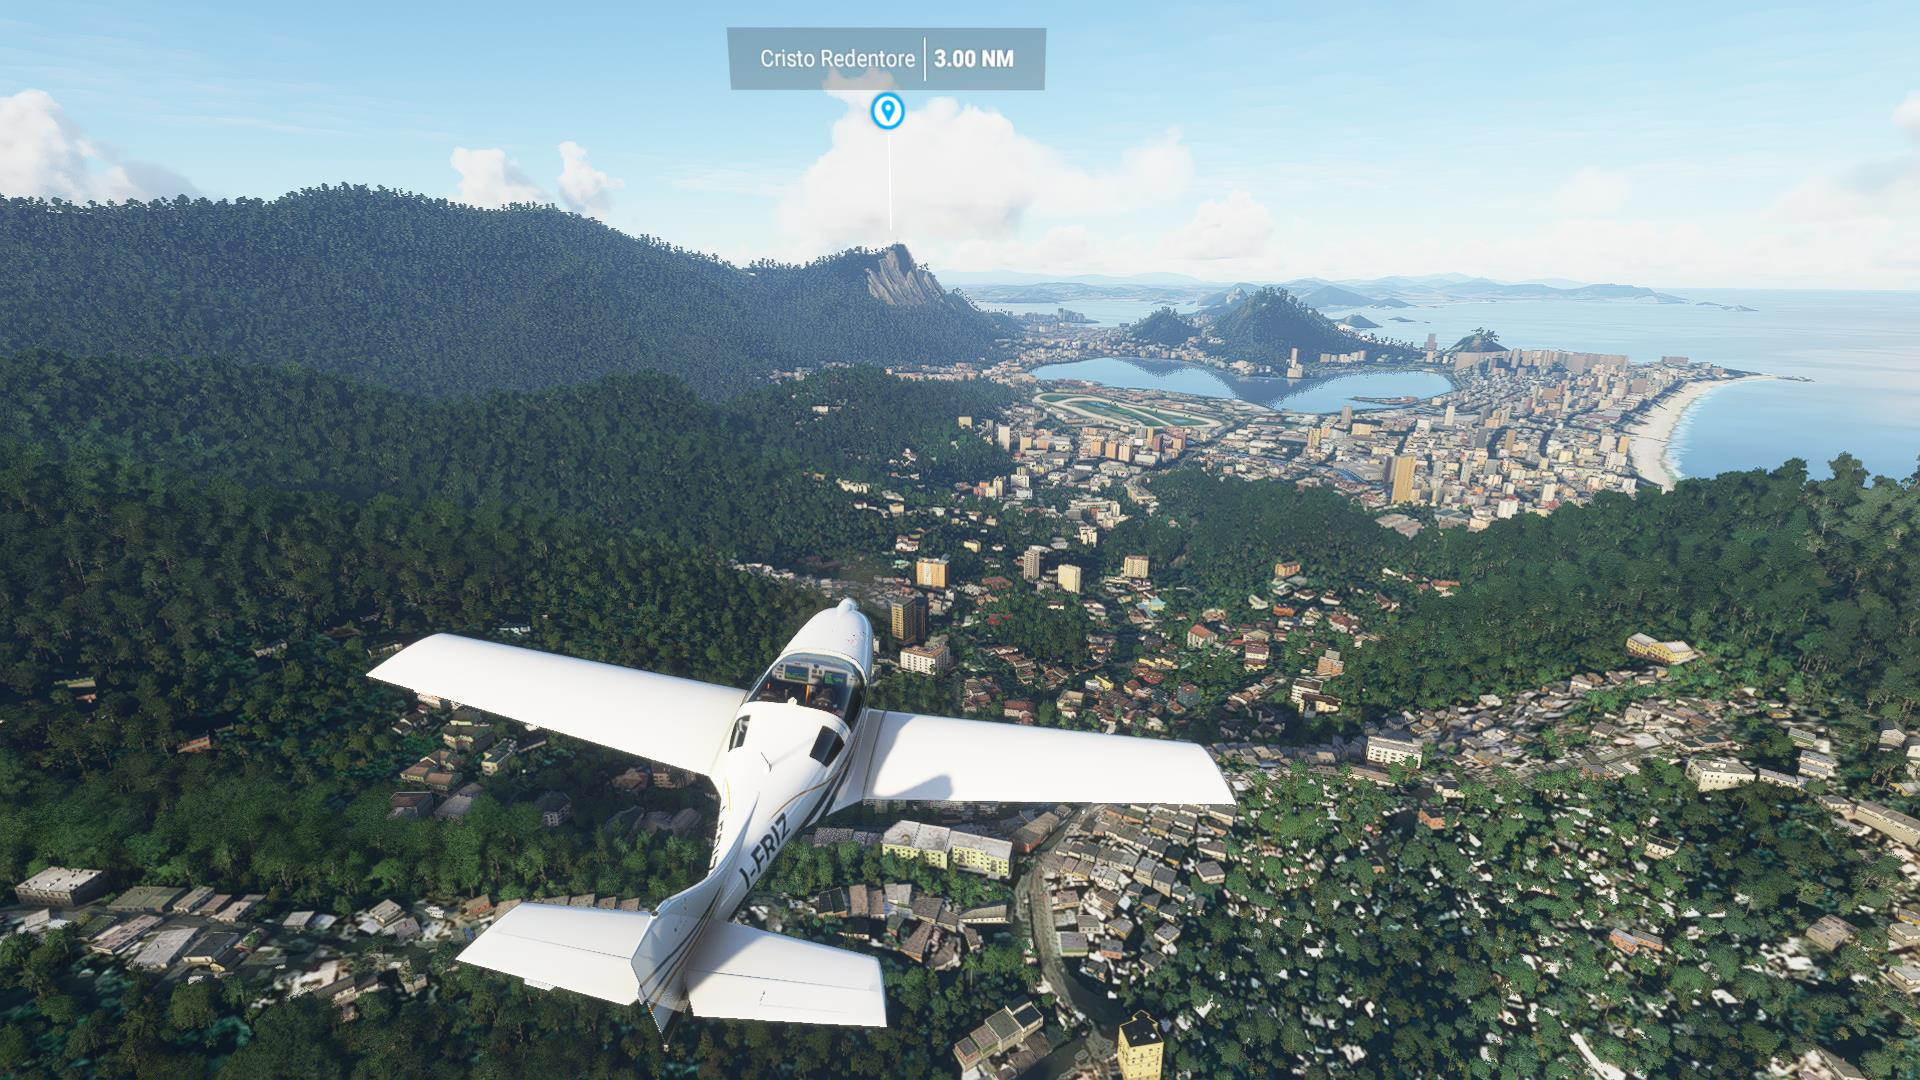 https://vivendobyte.blob.core.windows.net/57793/Microsoft Flight Simulator 13_01_2021 19_55_47.jpg